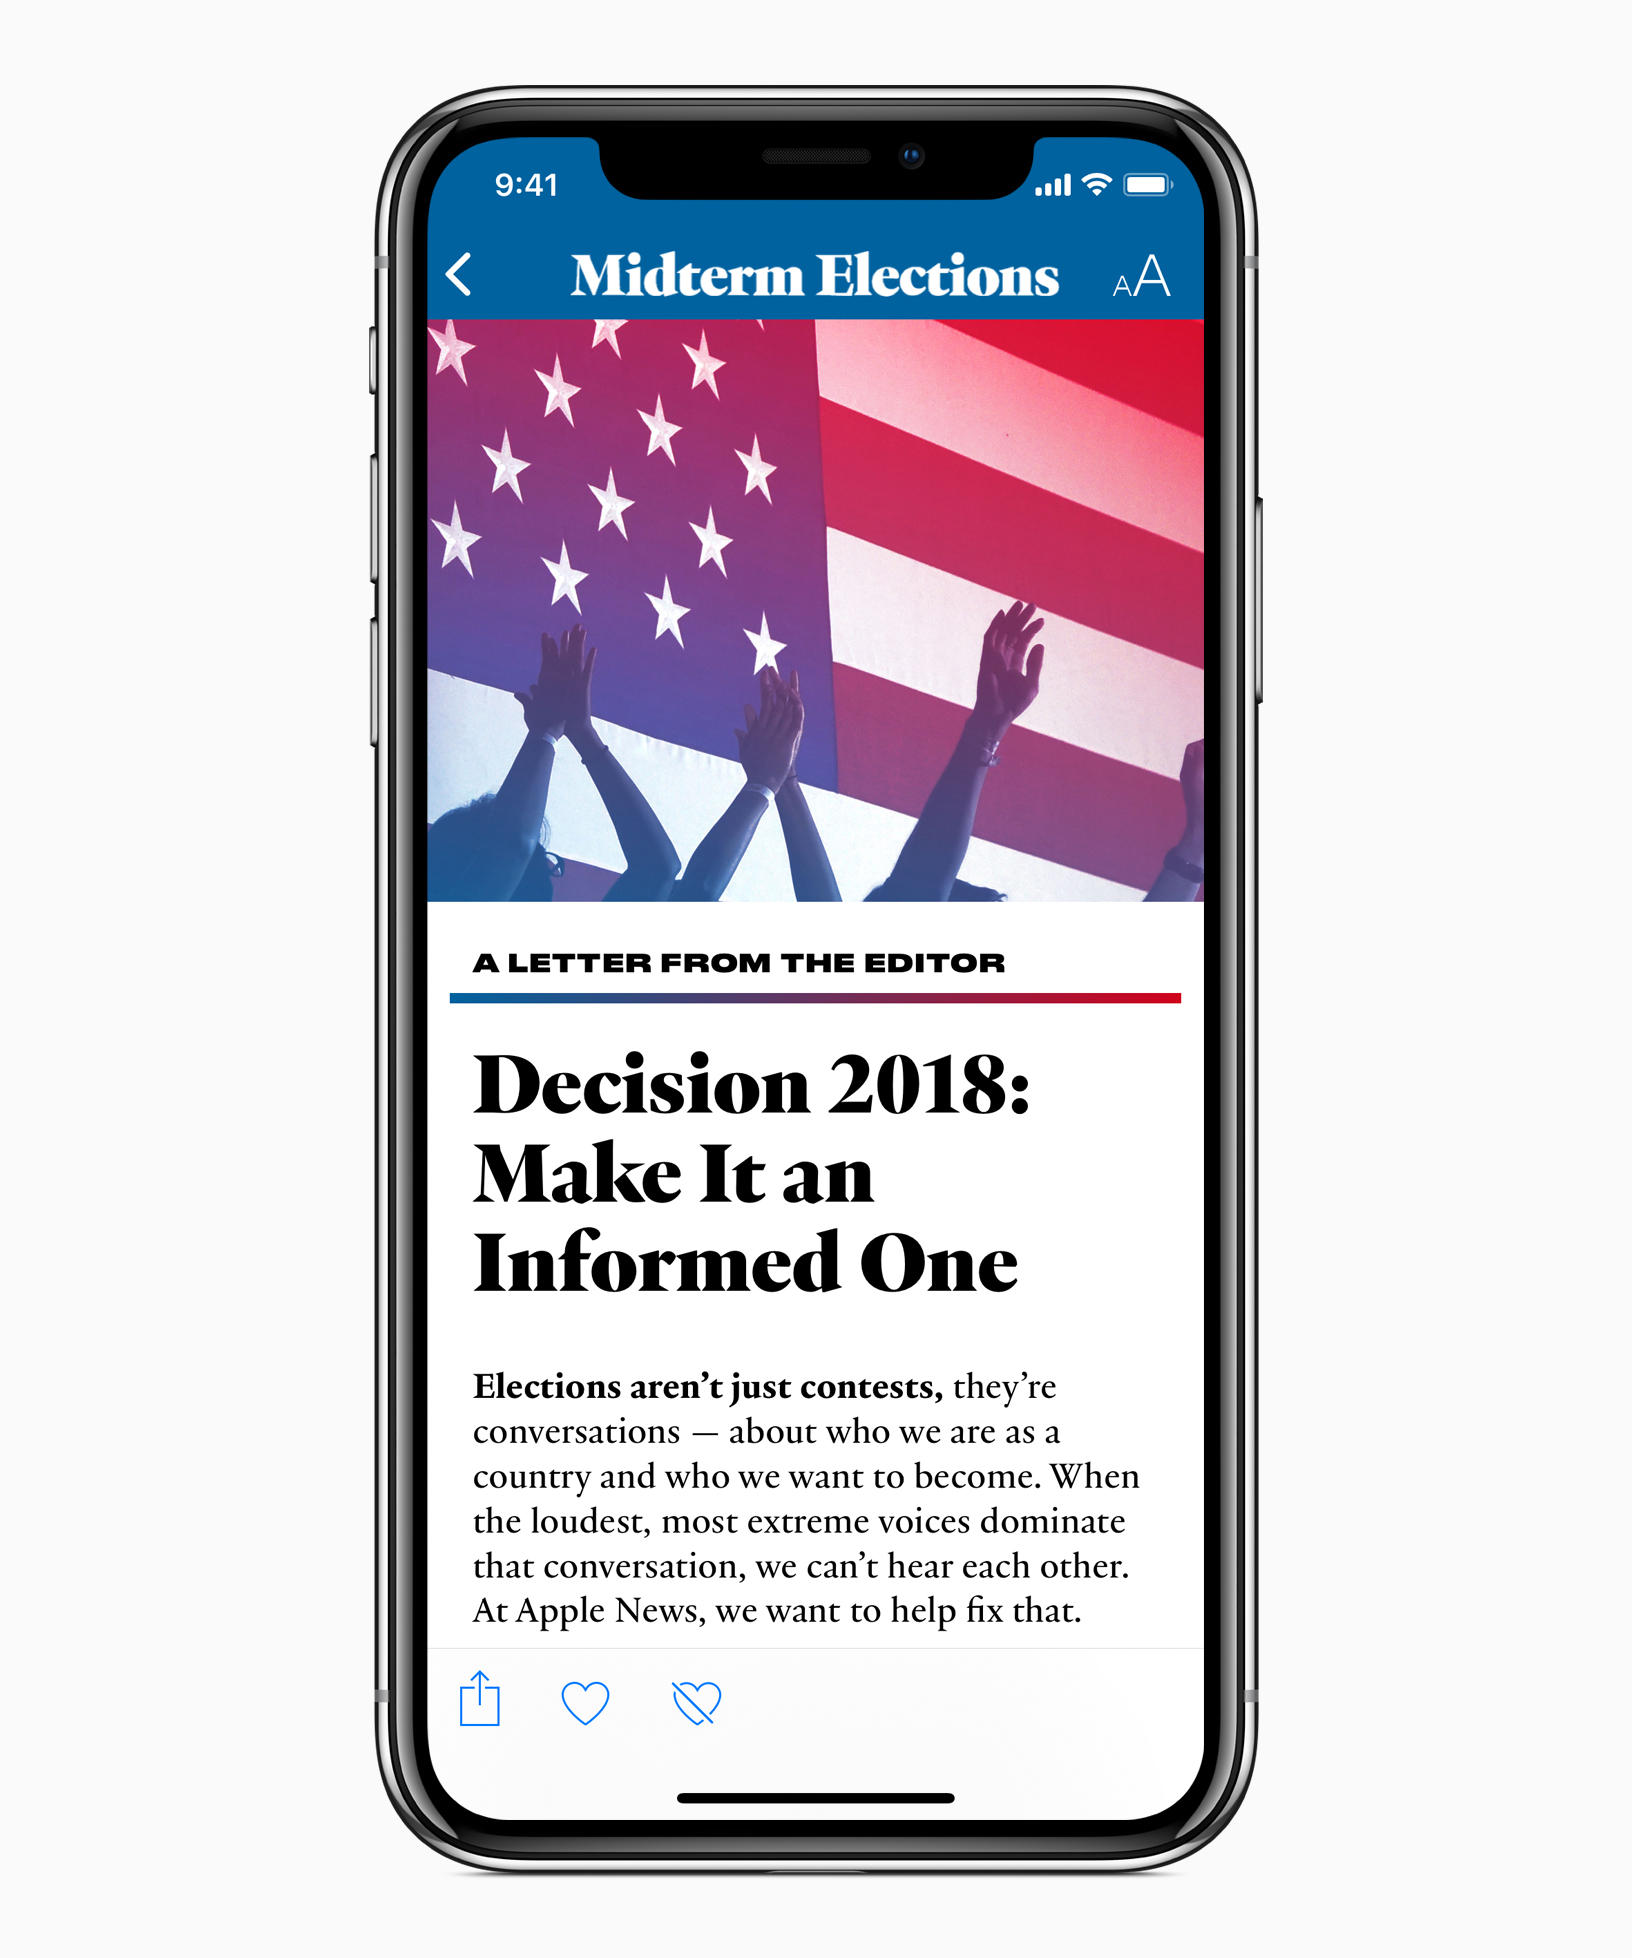 apple-news-2018-midterm-elections-editor-letter-062518